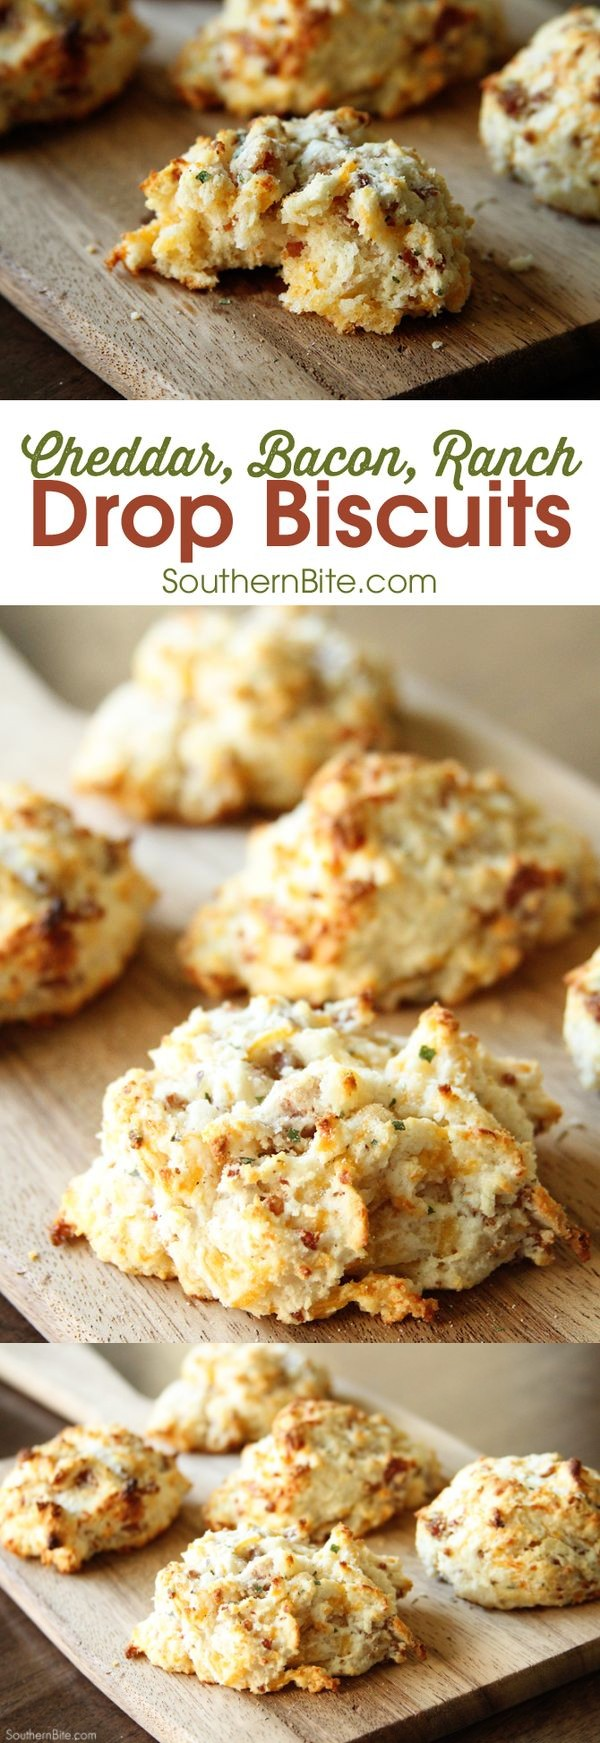 Cheddar, Bacon, Ranch Drop Biscuits